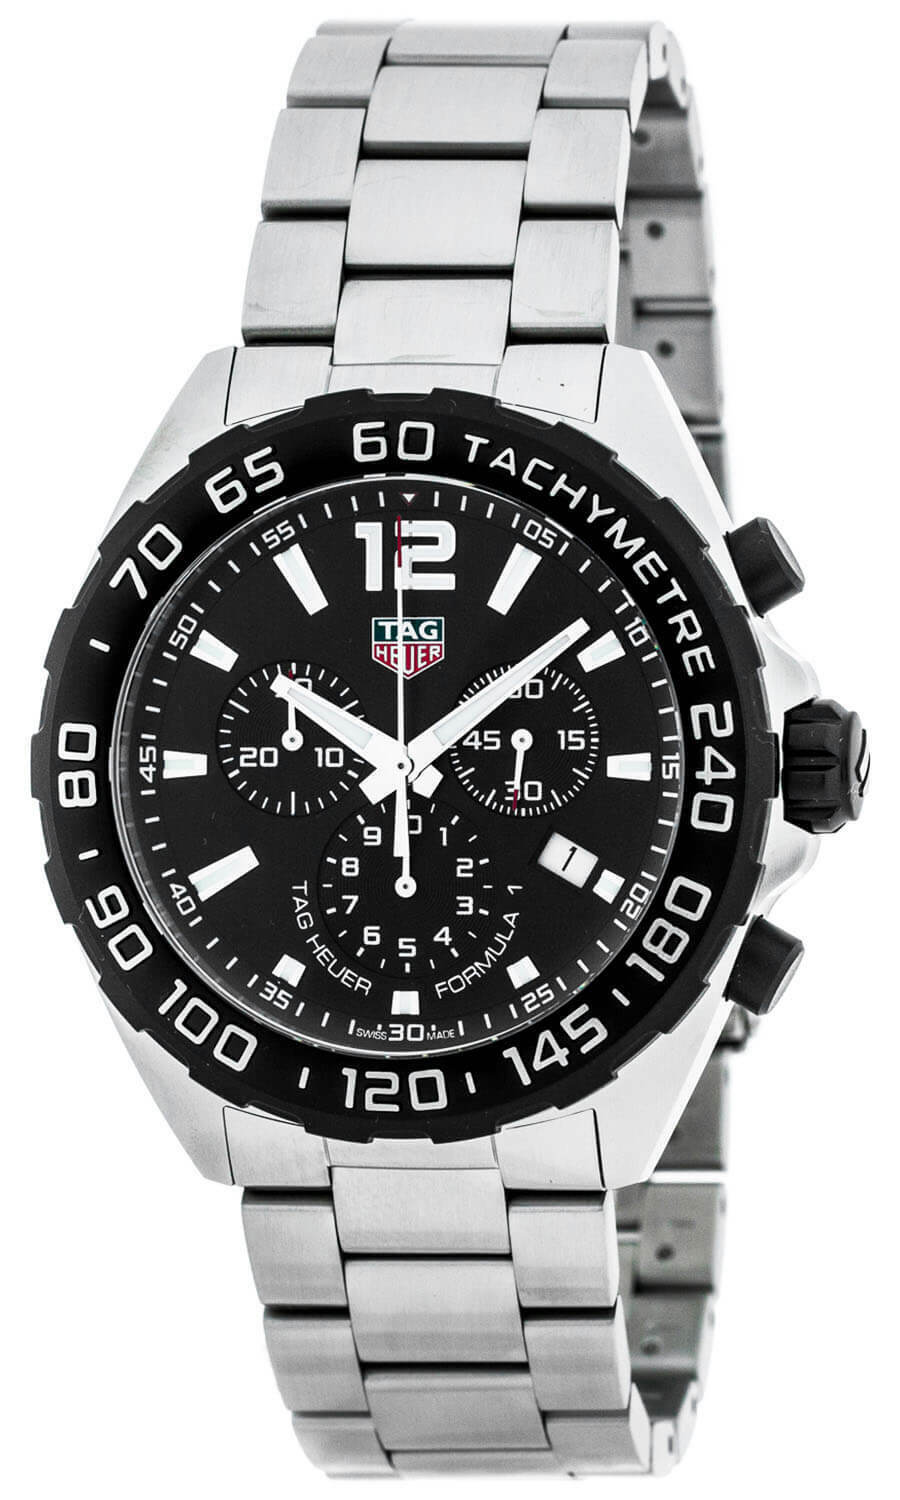 Tag Heuer Formula 1 Chronograph Black Dial 3 Row Links Men Watch CAZ1010.BA0842 - watch picture 1